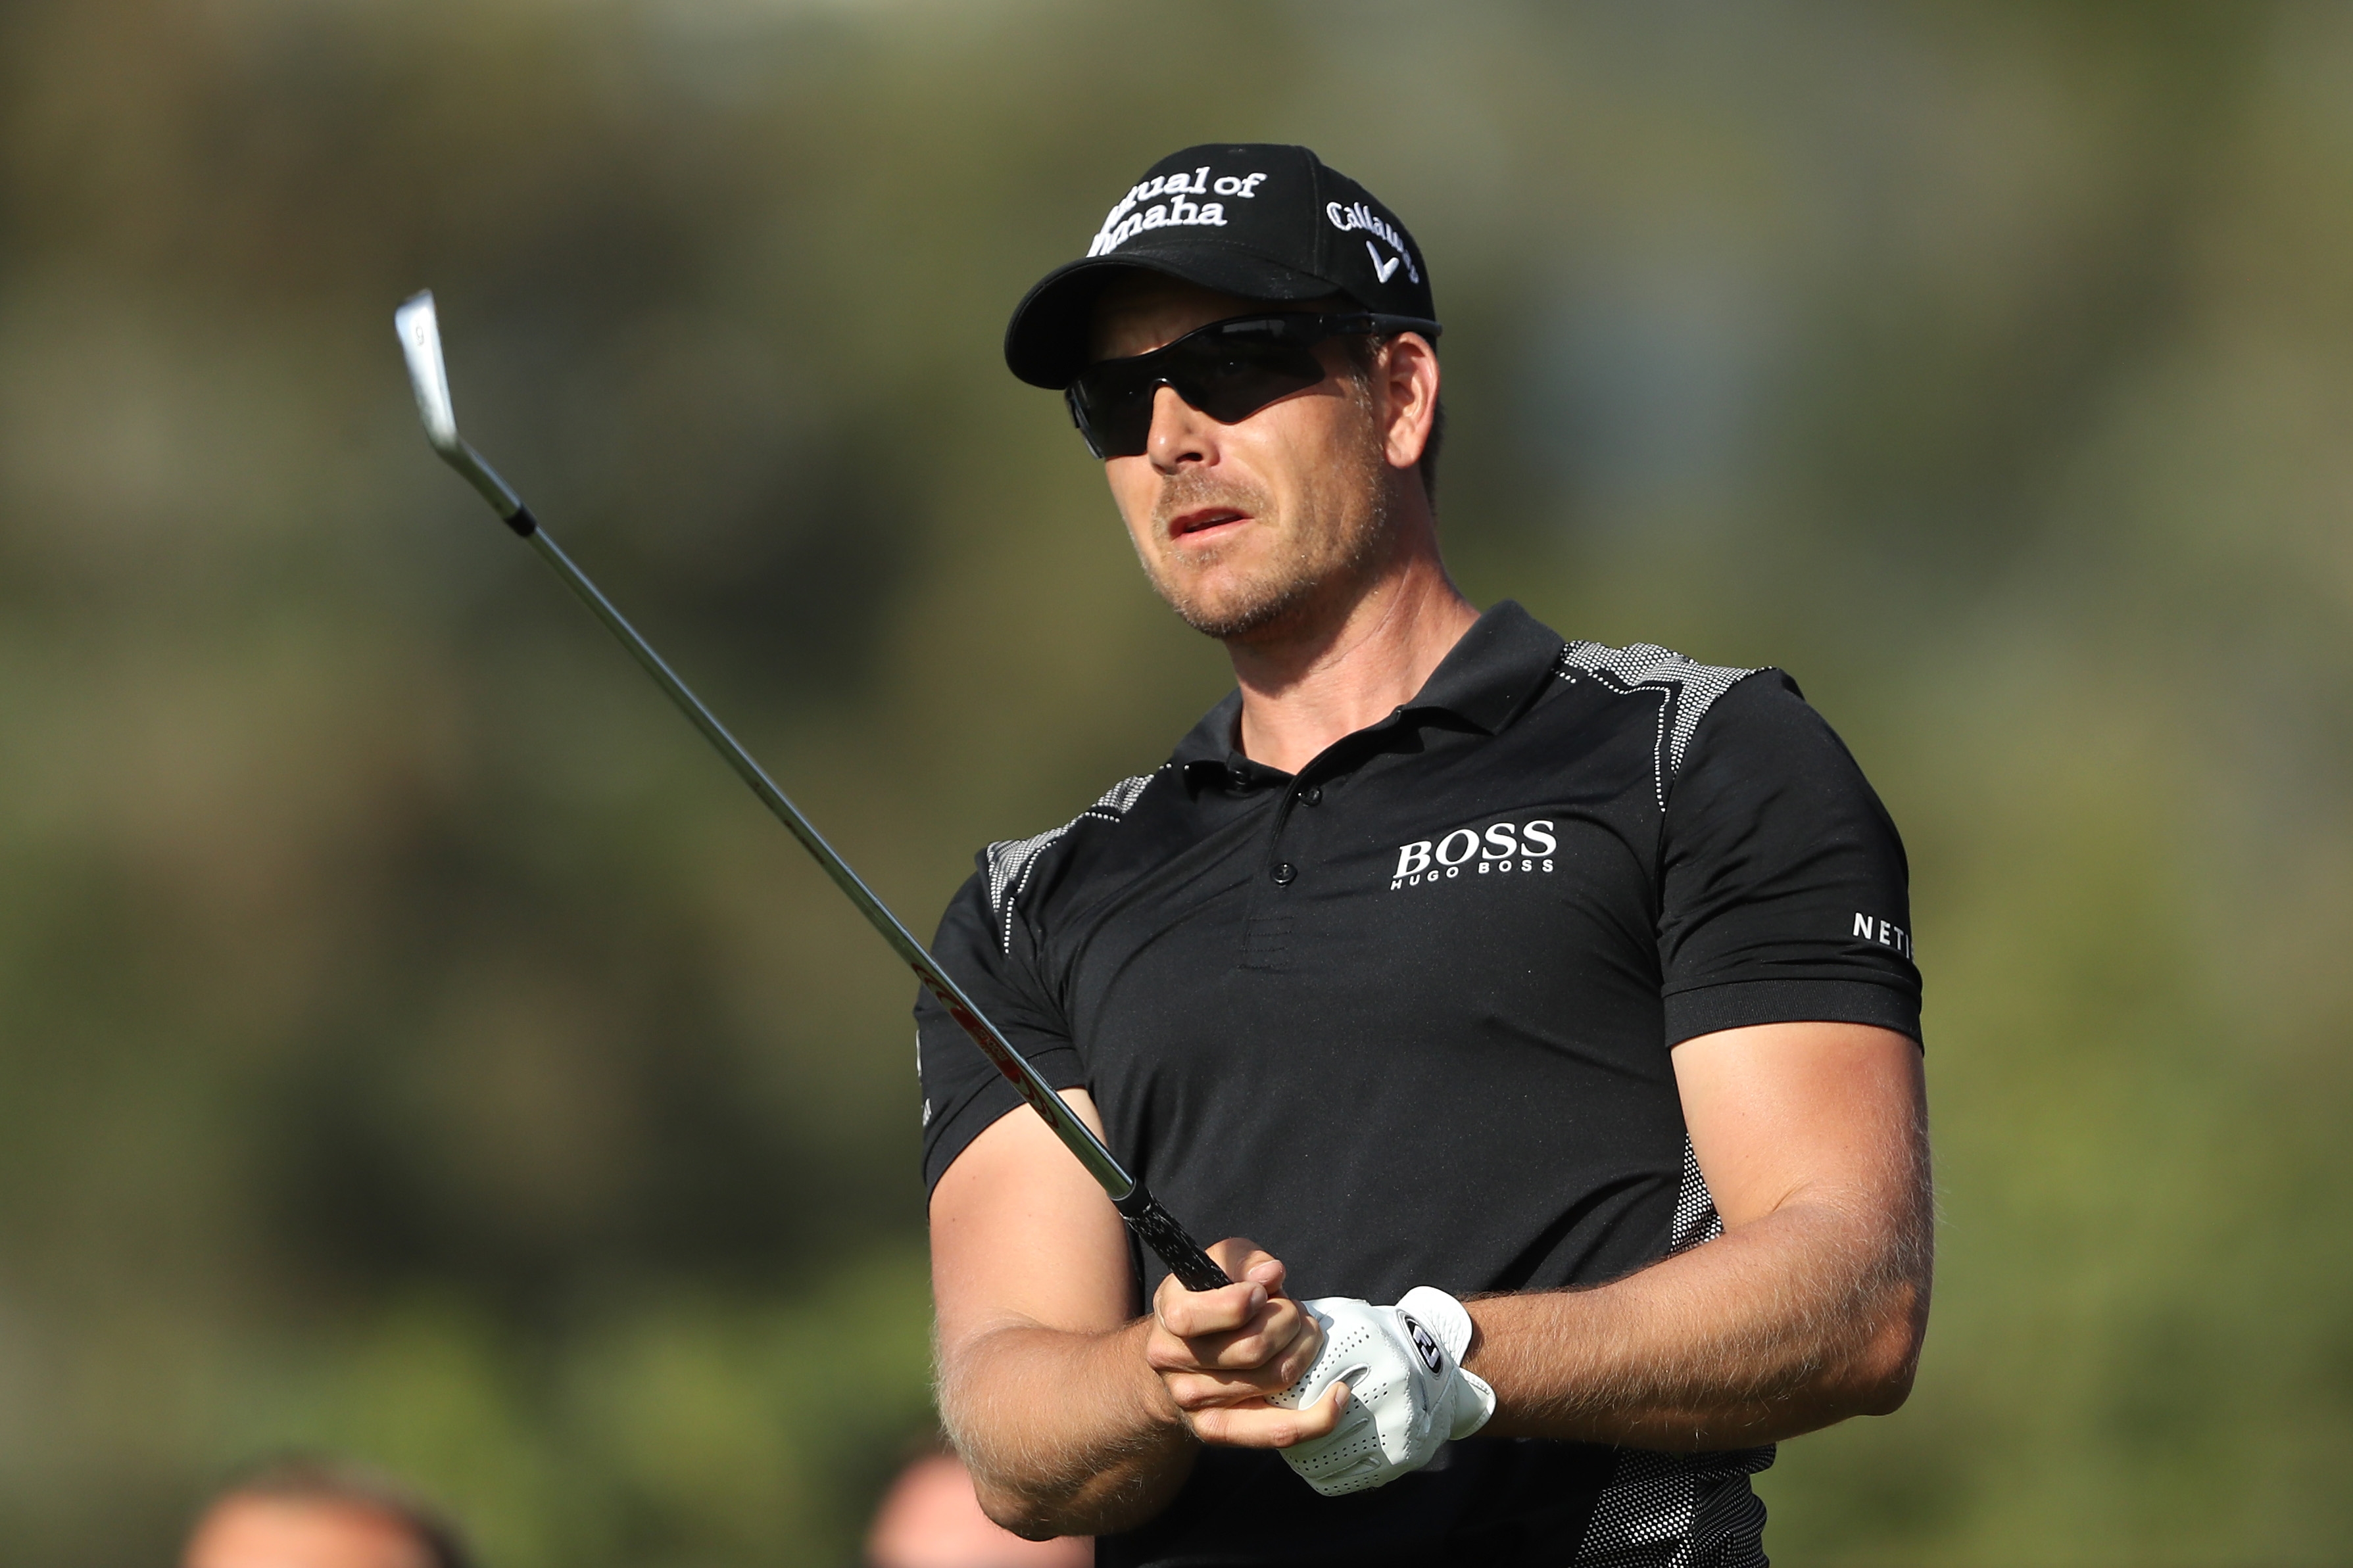 Can Henrik Stenson win in Mexico? We will find out this weekend.